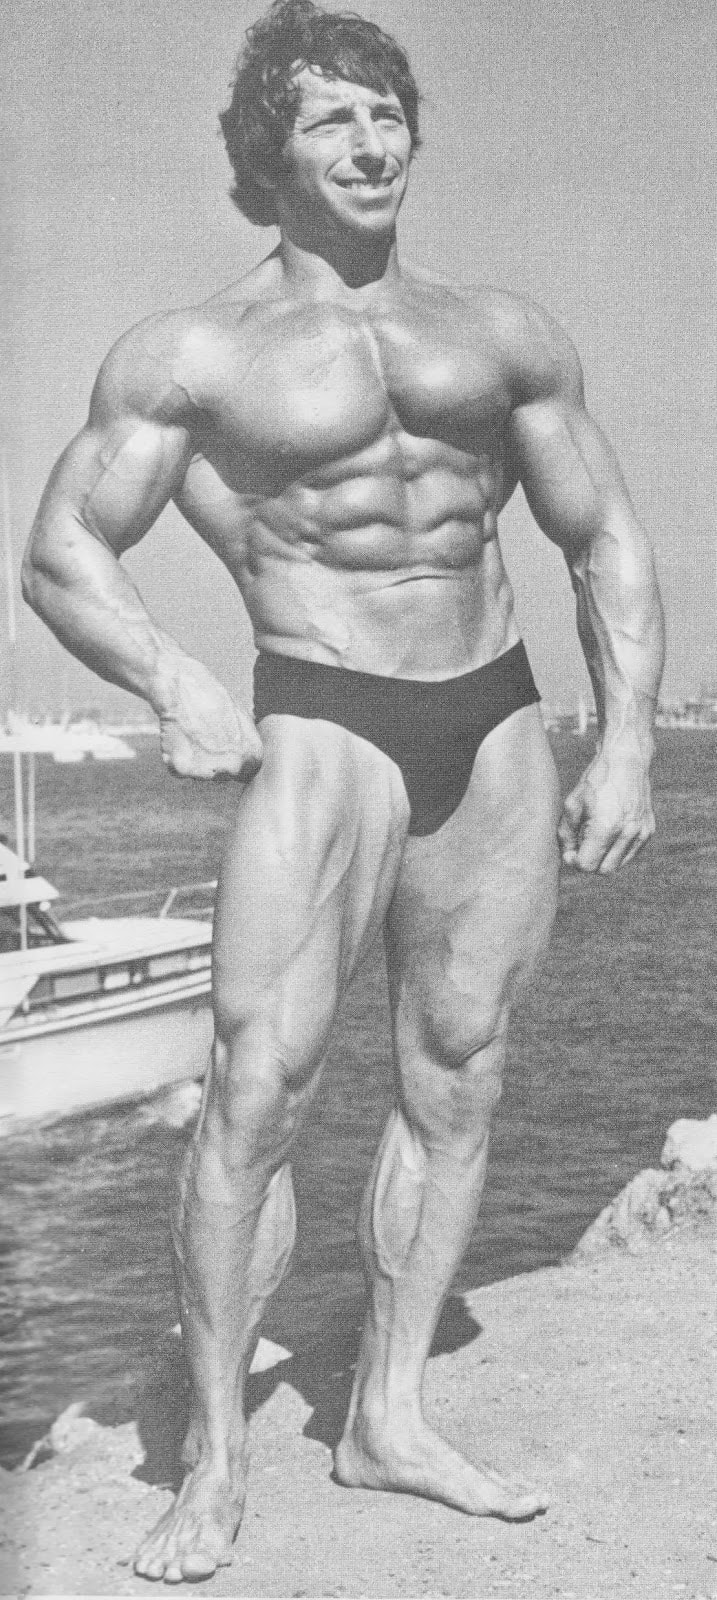 Eddie Giuliani posing for a photo showing off his muscular physique